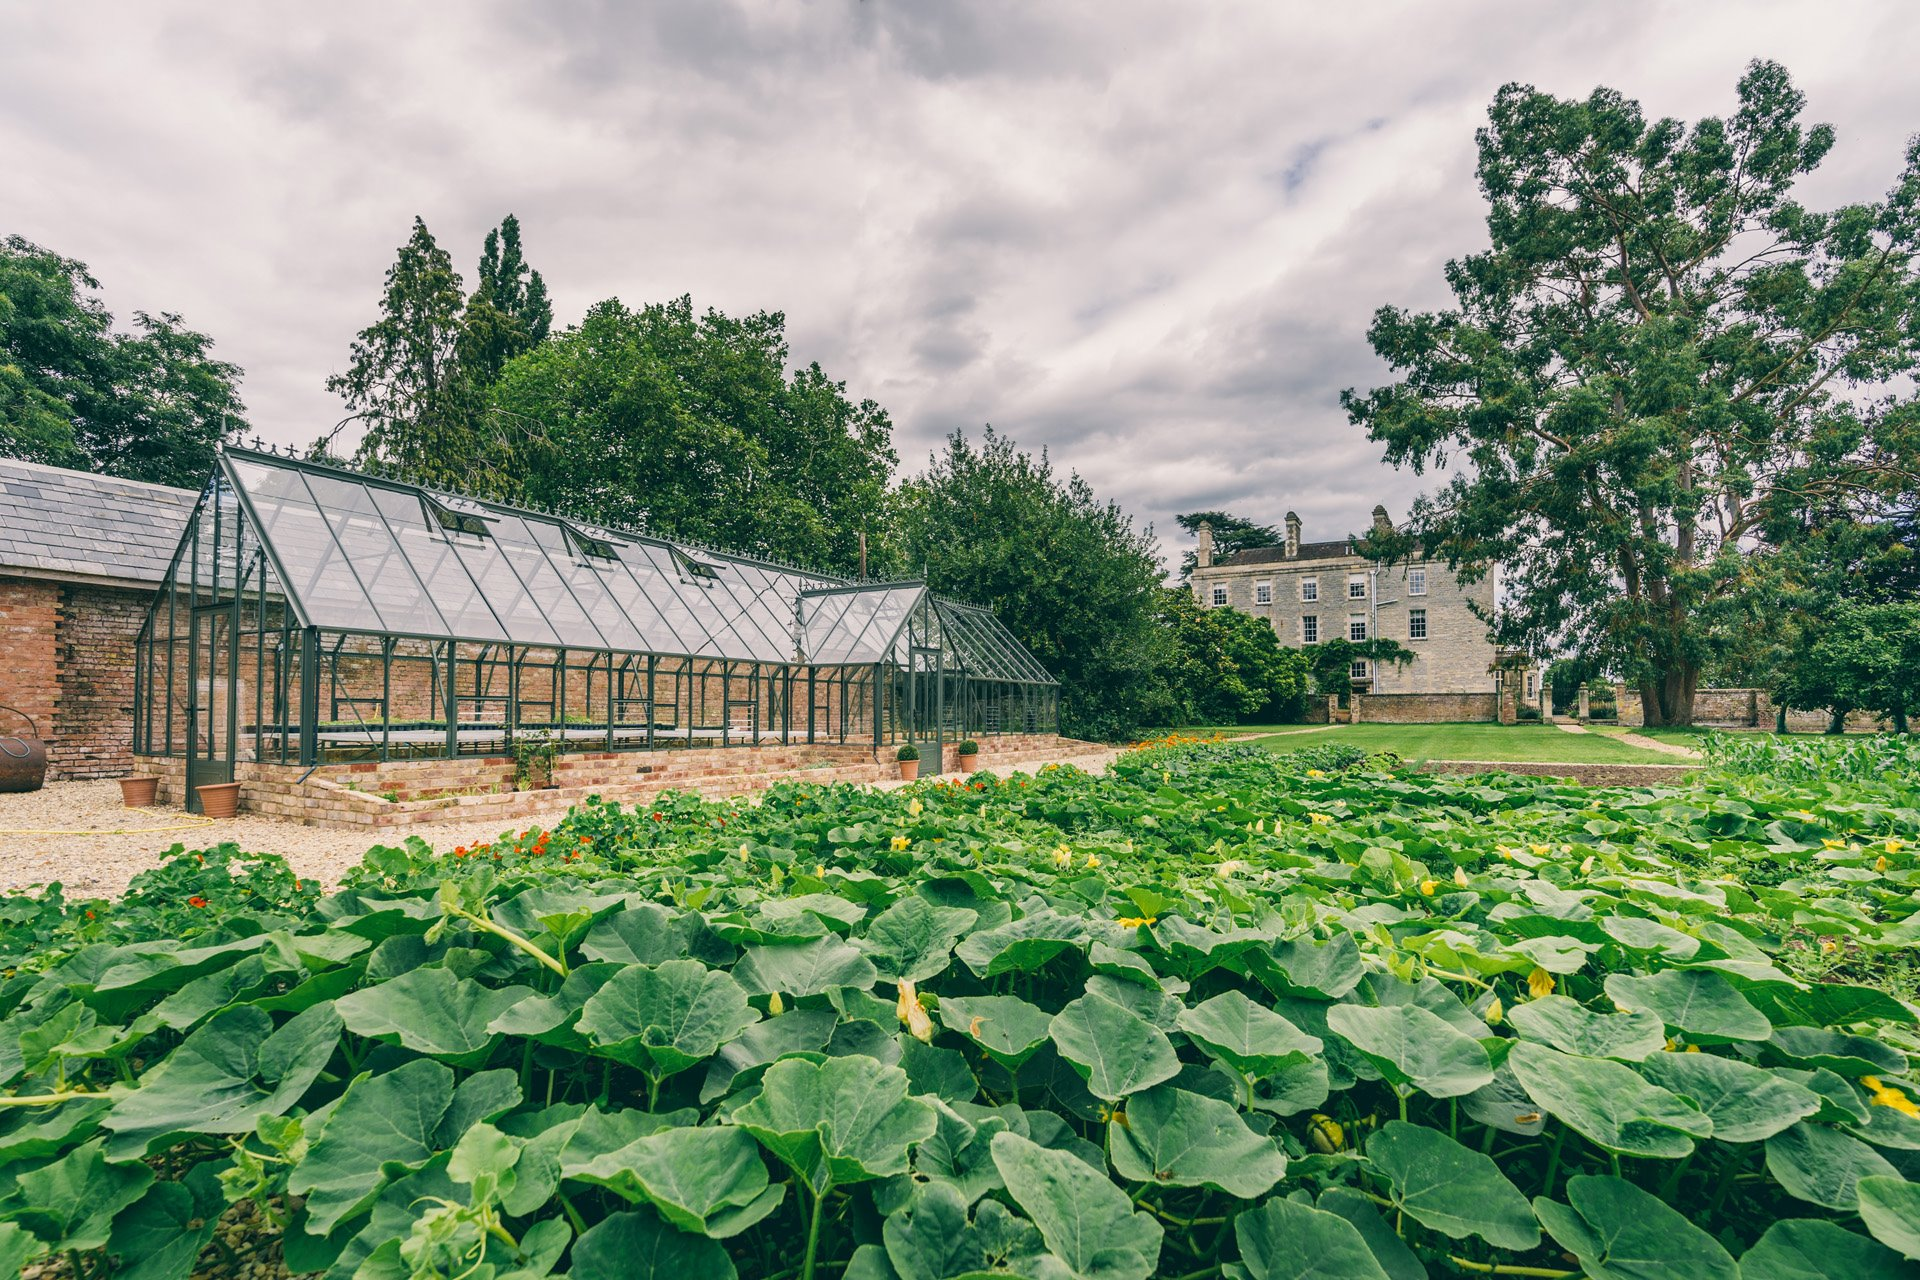 Walled garden at Elmore Court is stocked full of vegetables and ingredients for wedding menus